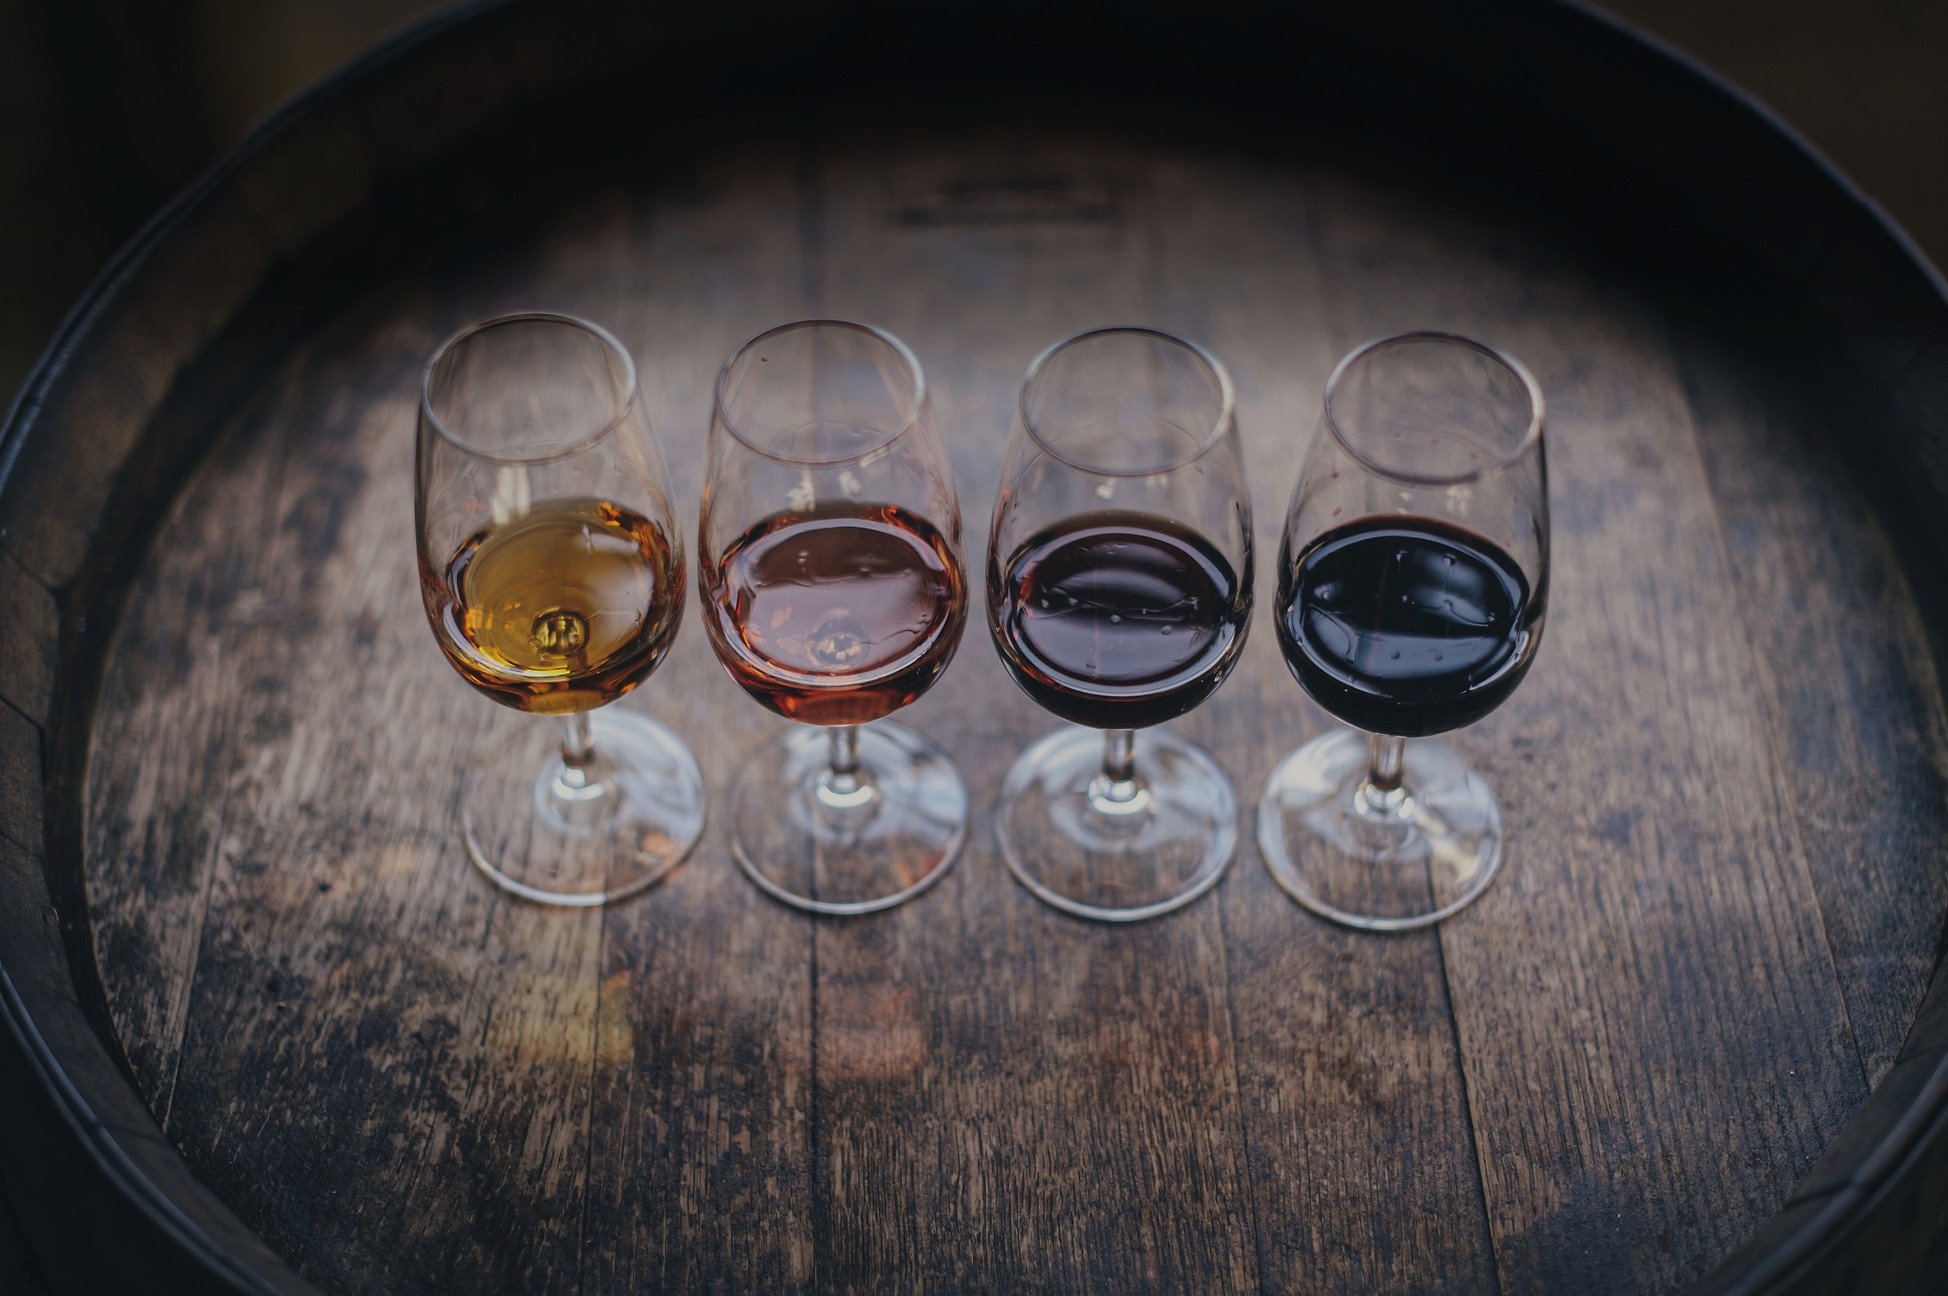 Four glasses of mead ranging from a traditional golden mead to a dark red fruity melomel mead. Buy Mead online from Elgin Meadery.